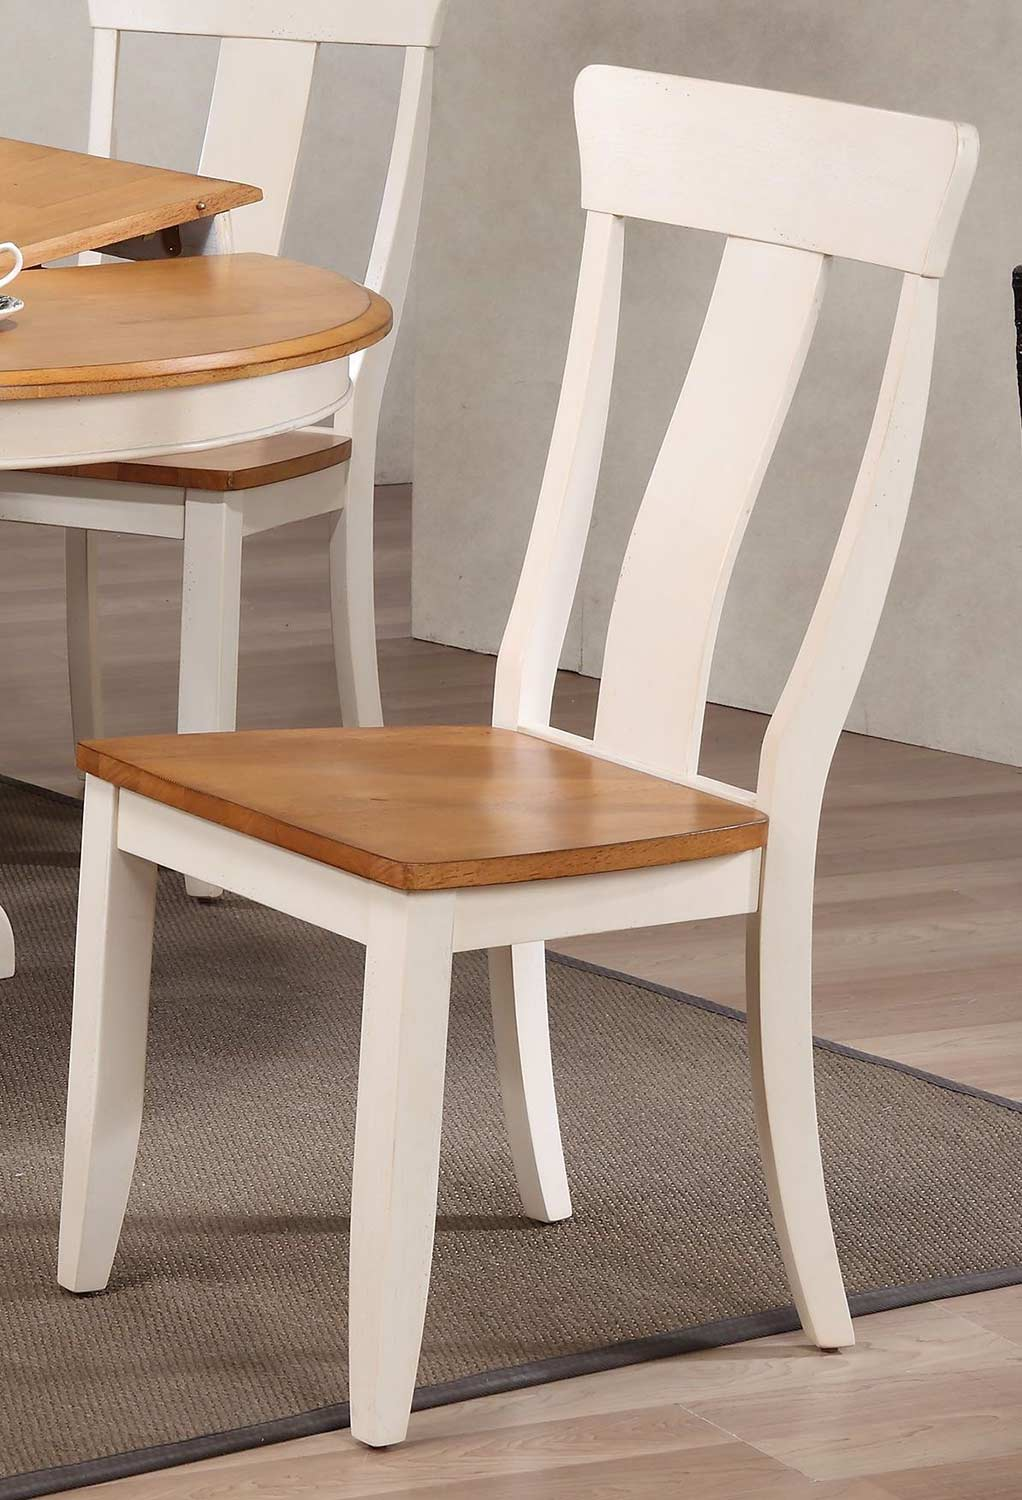 Iconic Furniture Panel Back Dining Chair - Caramel/Biscotti